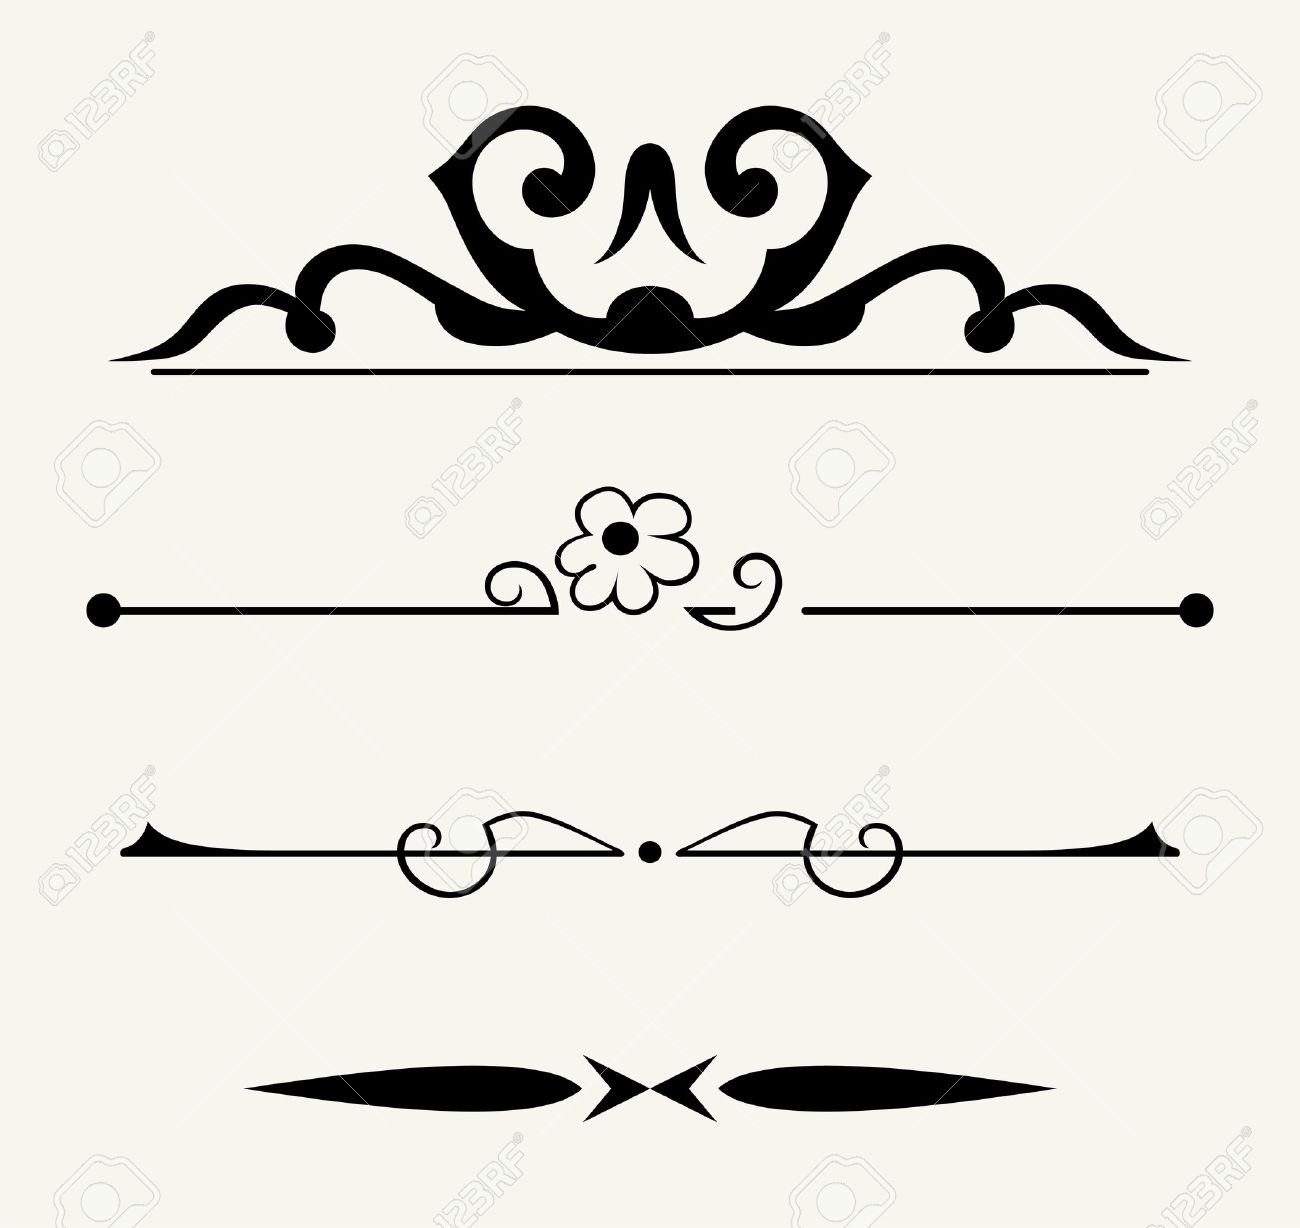 Calligraphy Line Design Wiring Diagrams Manual Cutter For Printed Circuit Board Sunyzcb400 View Vector Set Calligraphic Elements And Page Decoration Rh 123rf Com Art Strokes